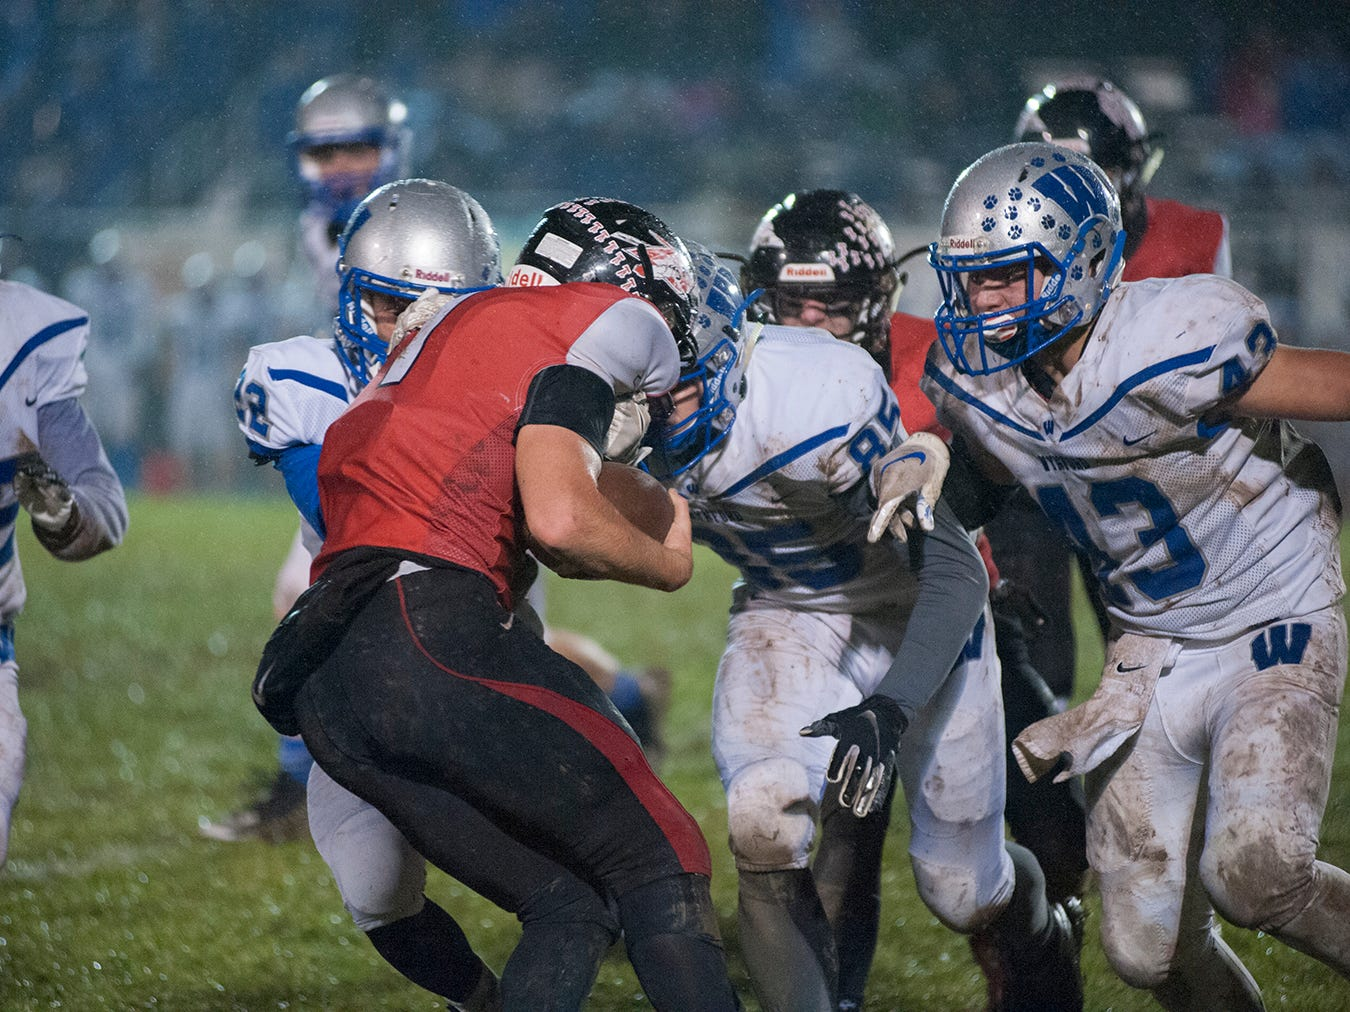 Bucyrus' Zane Seybert braces for a tackle from a trio of Wynford defenders.